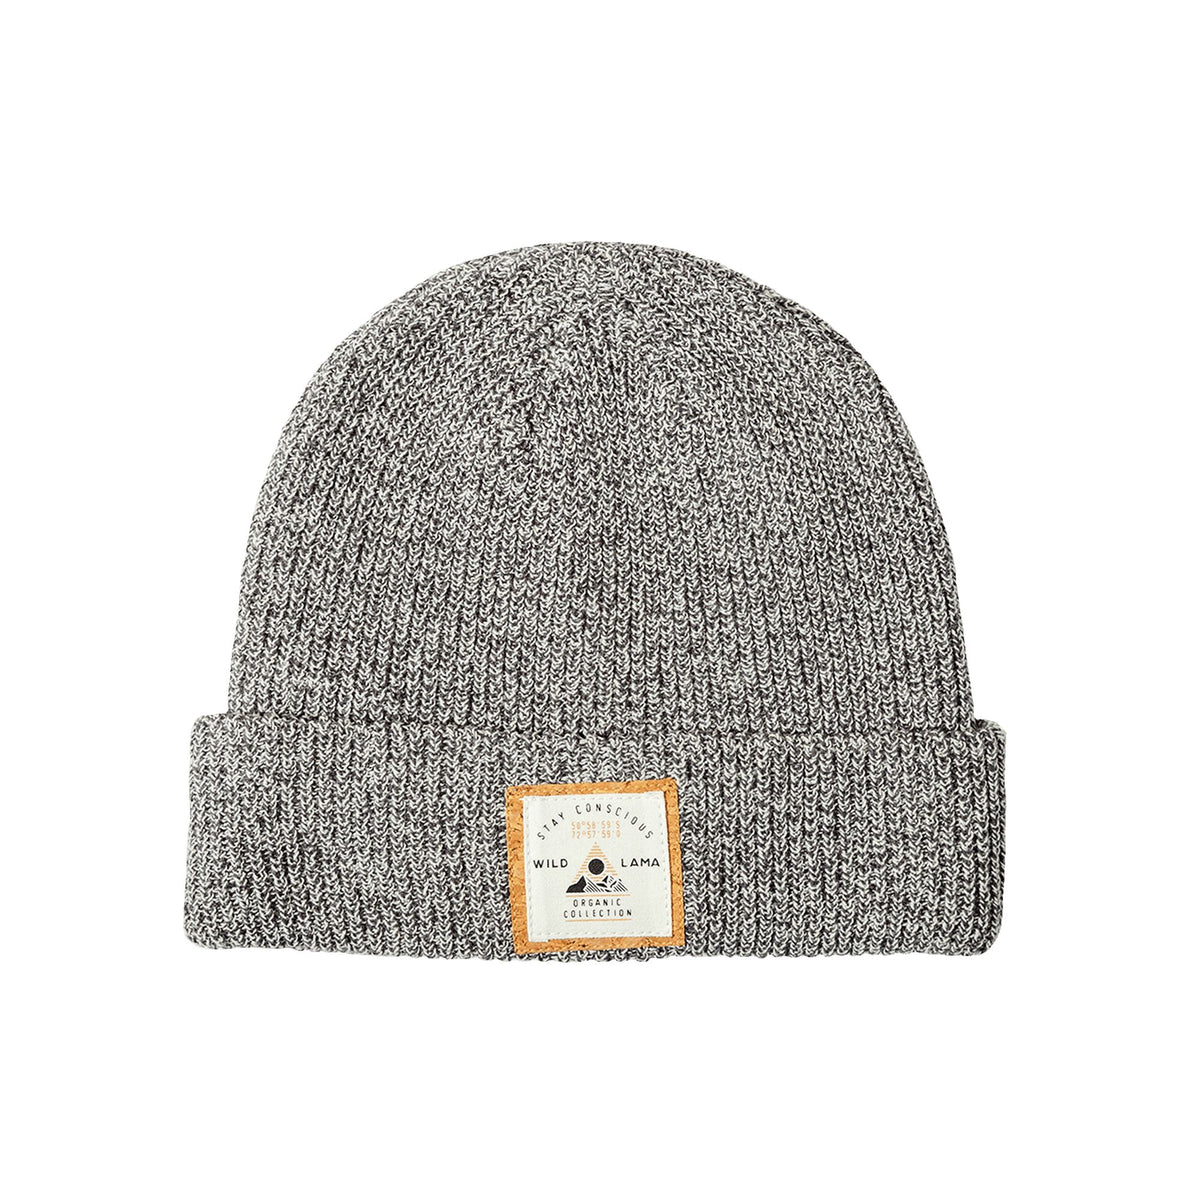 Urban White & Middle Gray Beanie BEANIE WILD WRAP!